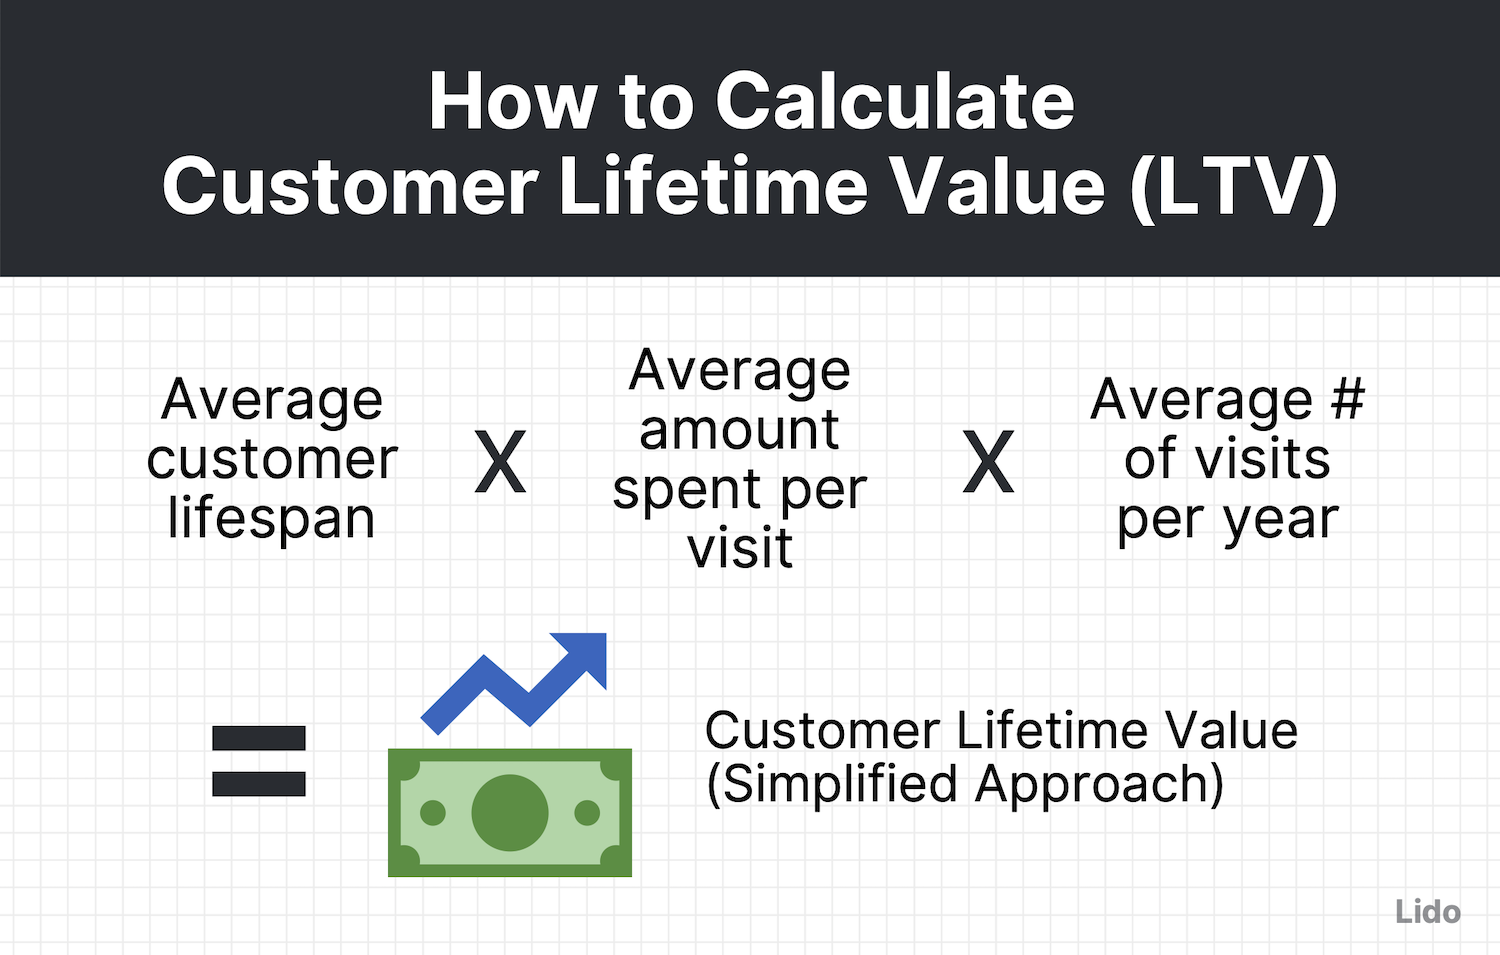 simplified customer lifetime value equation = average customer lifespan * average amount spent per visit * average number of visits per year